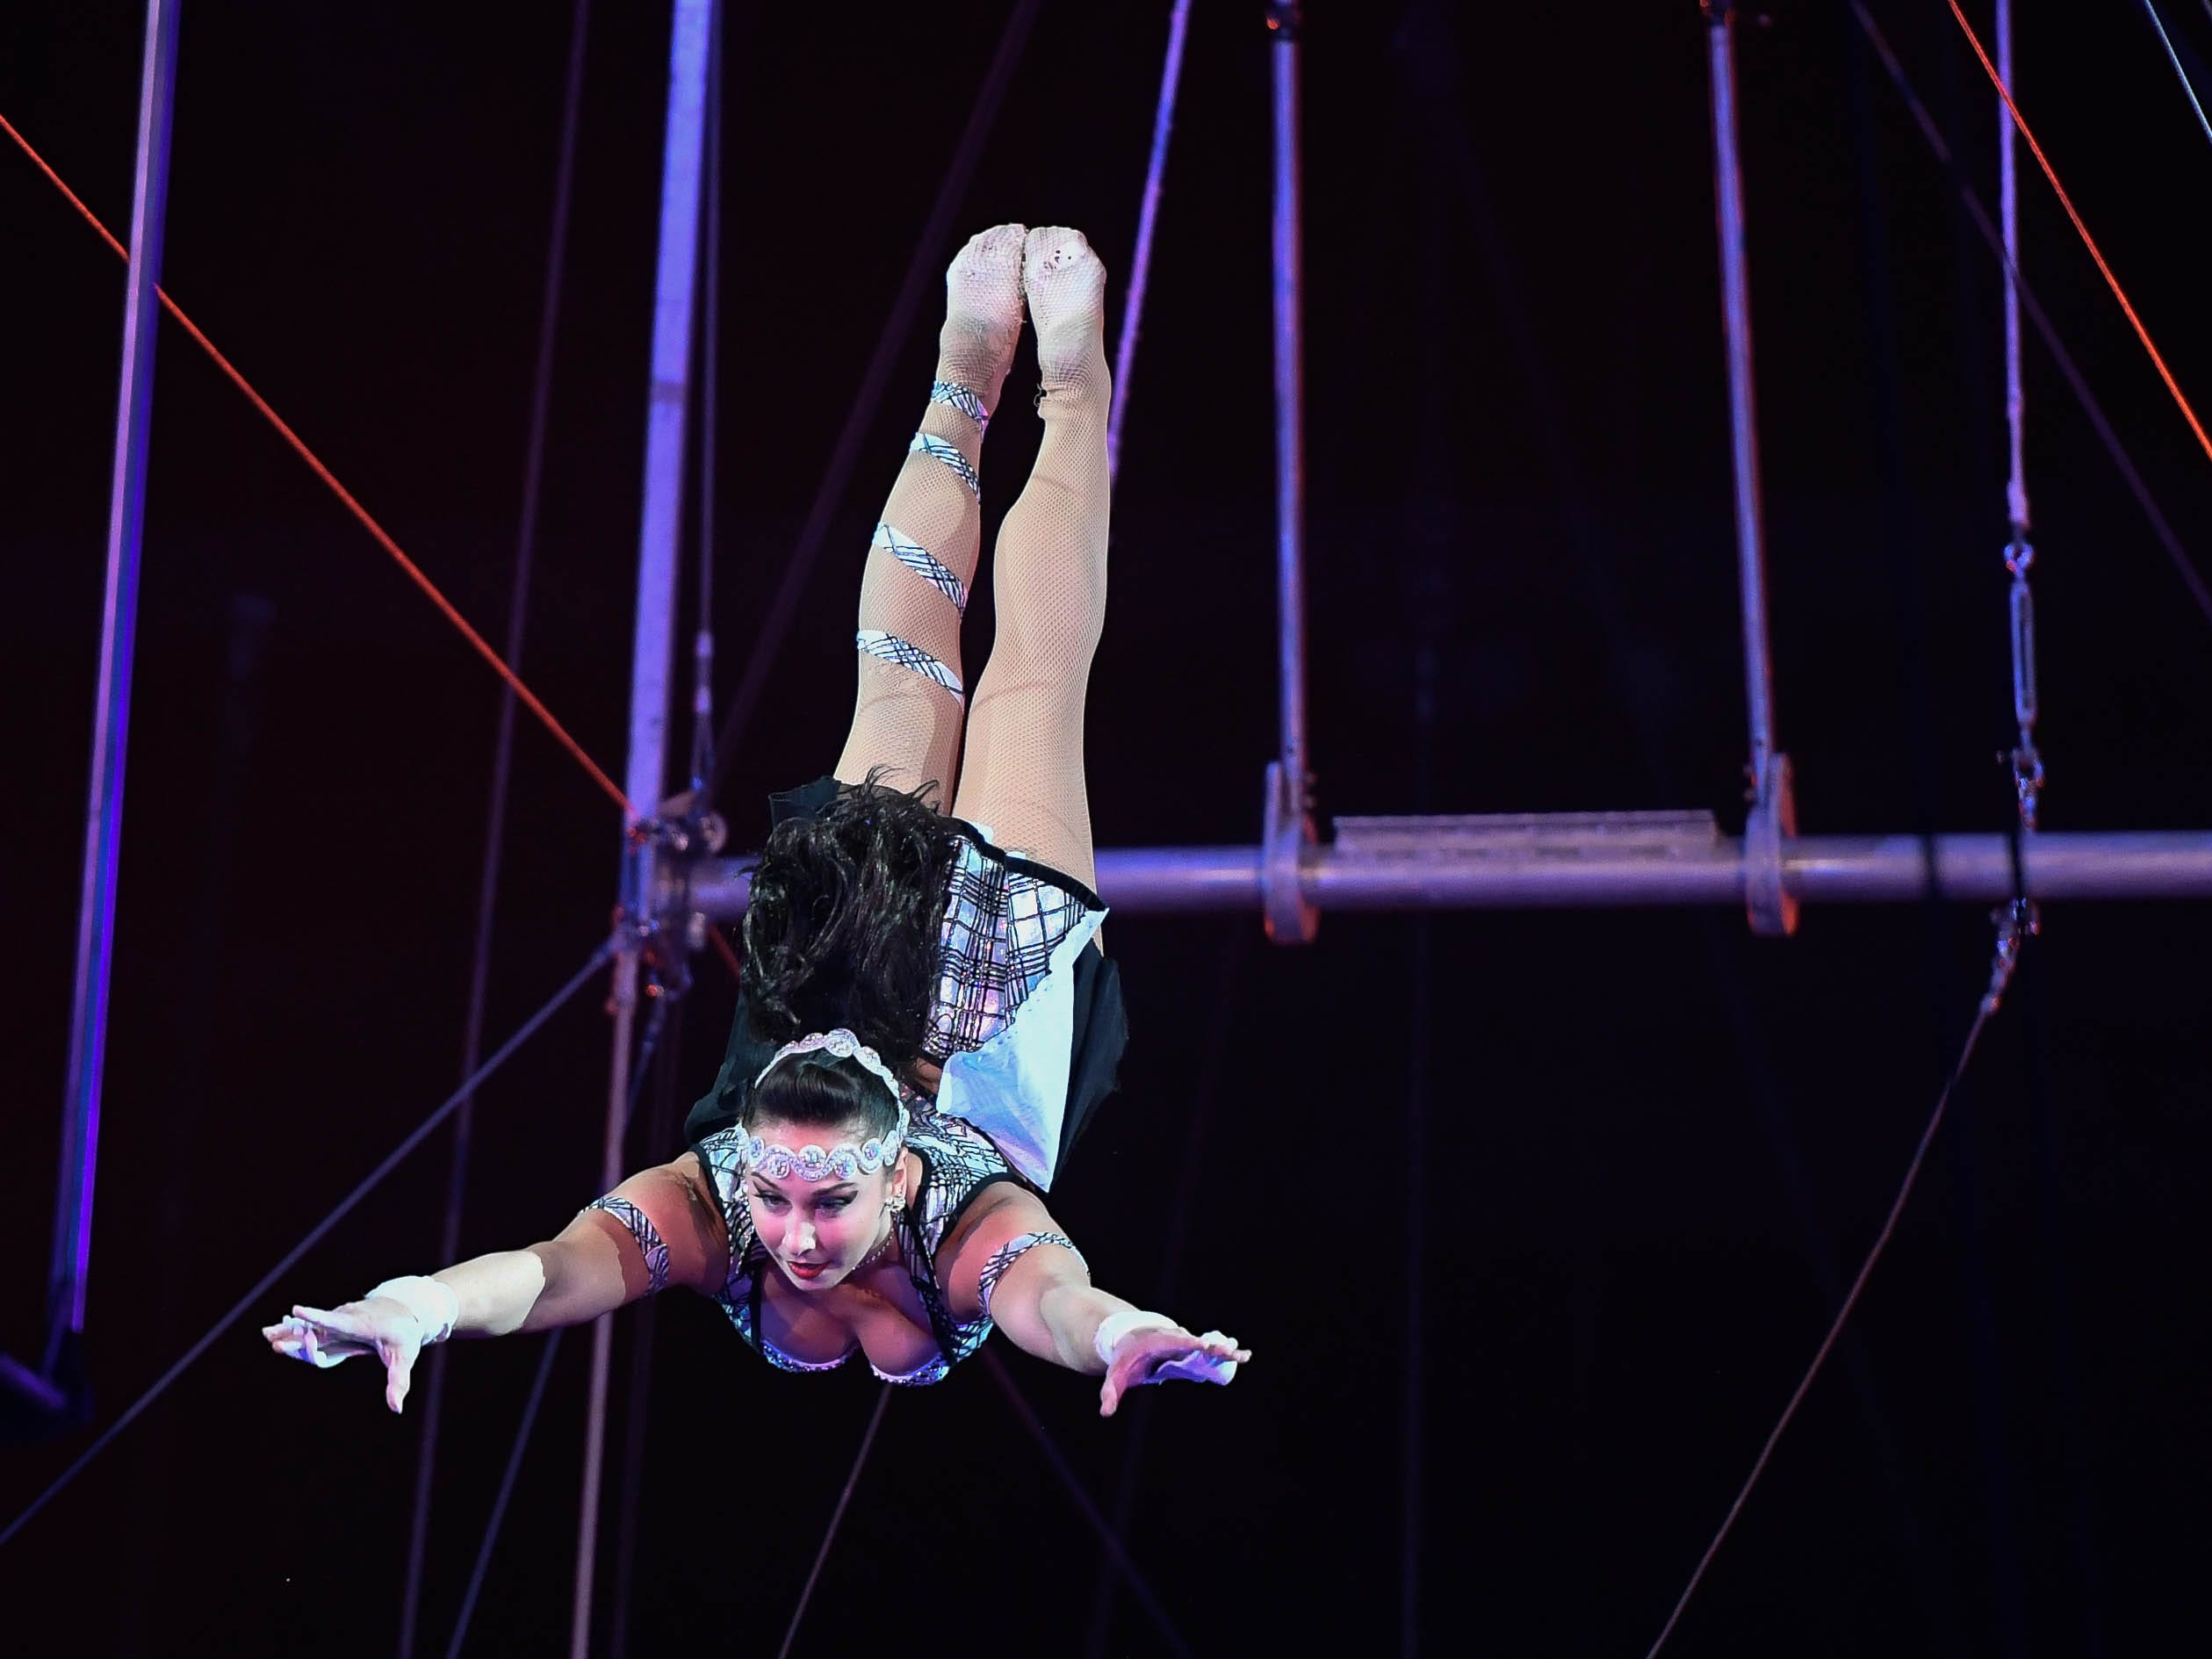 A member of The Flying Cortez performs during the 85th annual Hadi Shrine Circus at the Evansville Ford Center Friday, November 23, 2018.